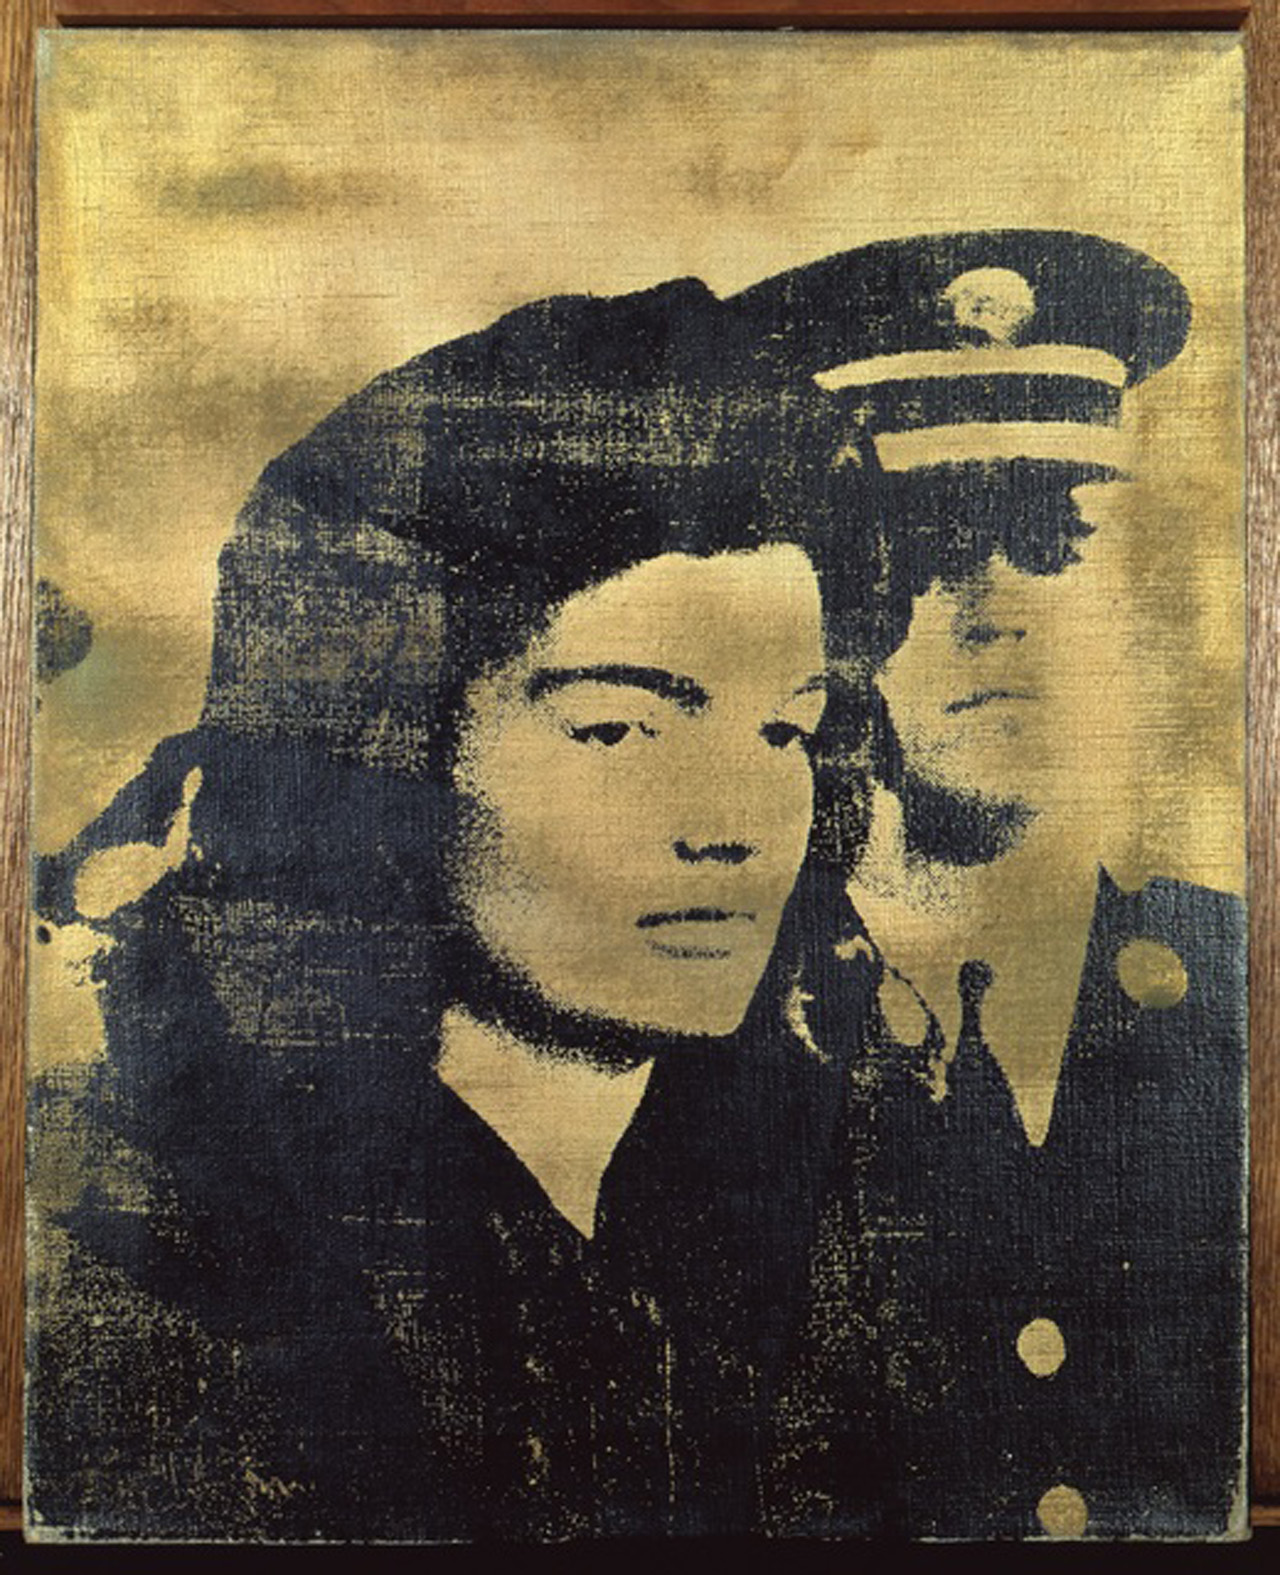 """Andy Warhol, """"Jackie (Gold)"""" (1964), silkscreen ink on canvas, 20 by 16 in. (© The Sonnabend Collection, on loan from Antonio Homem © The Andy Warhol Foundation for the Visual Arts, Inc. / ADAGP, Paris 2015)"""